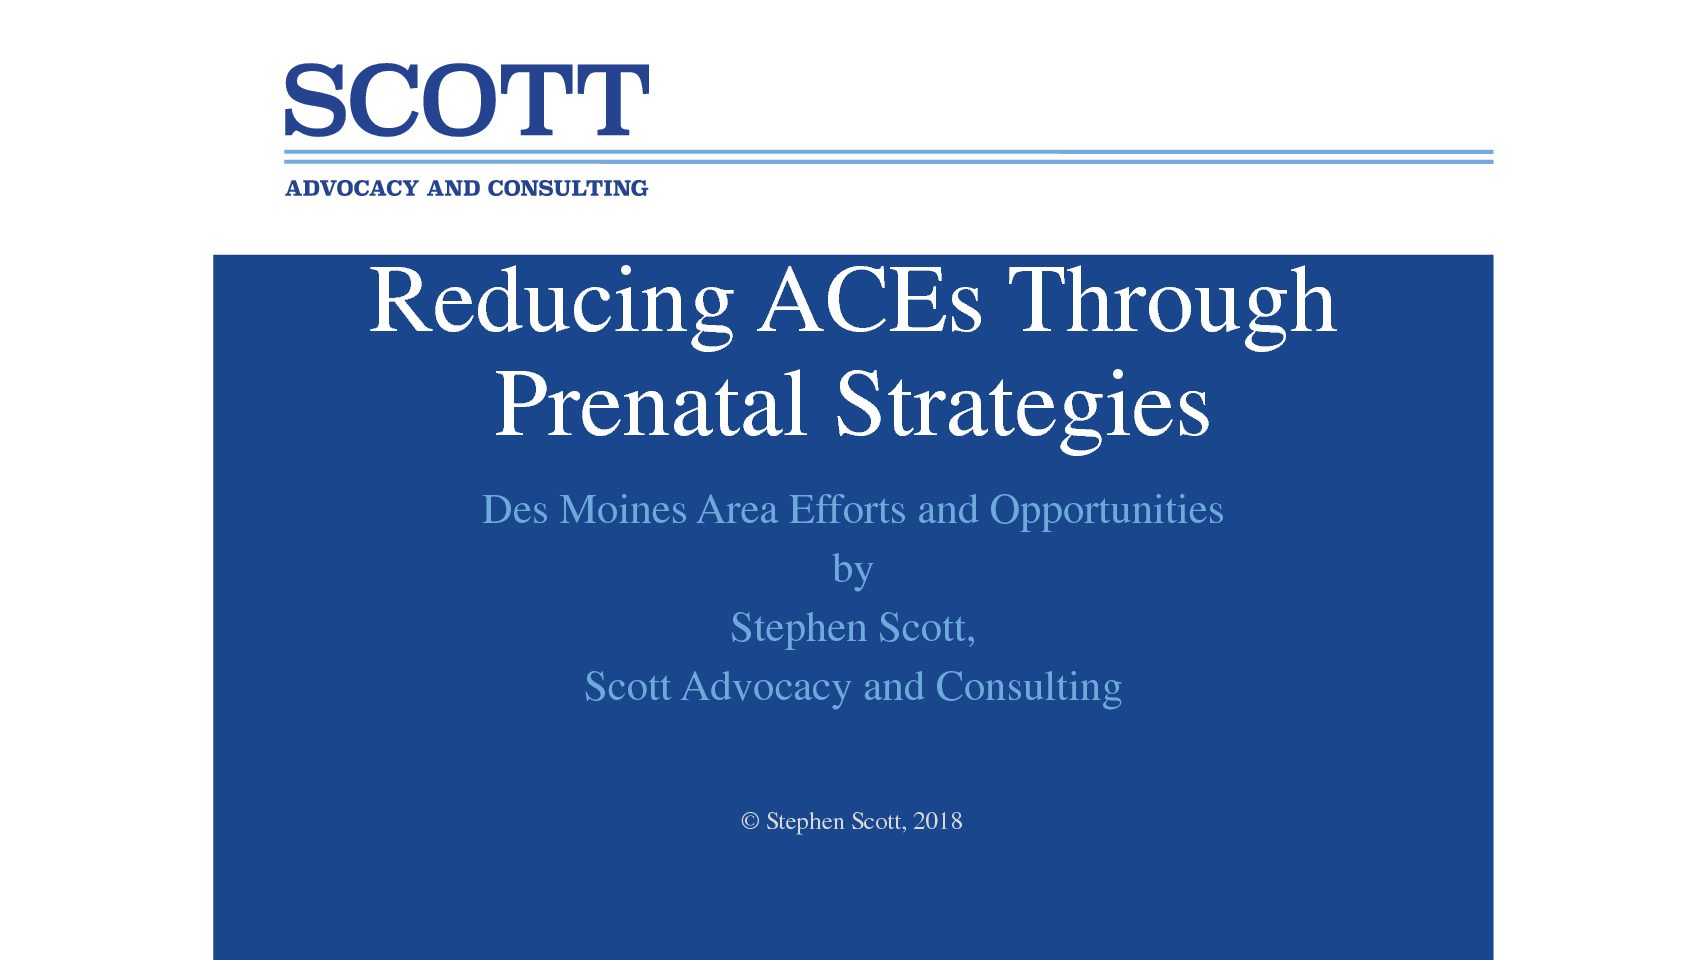 Reducing ACEs Through Prenatal Strategies